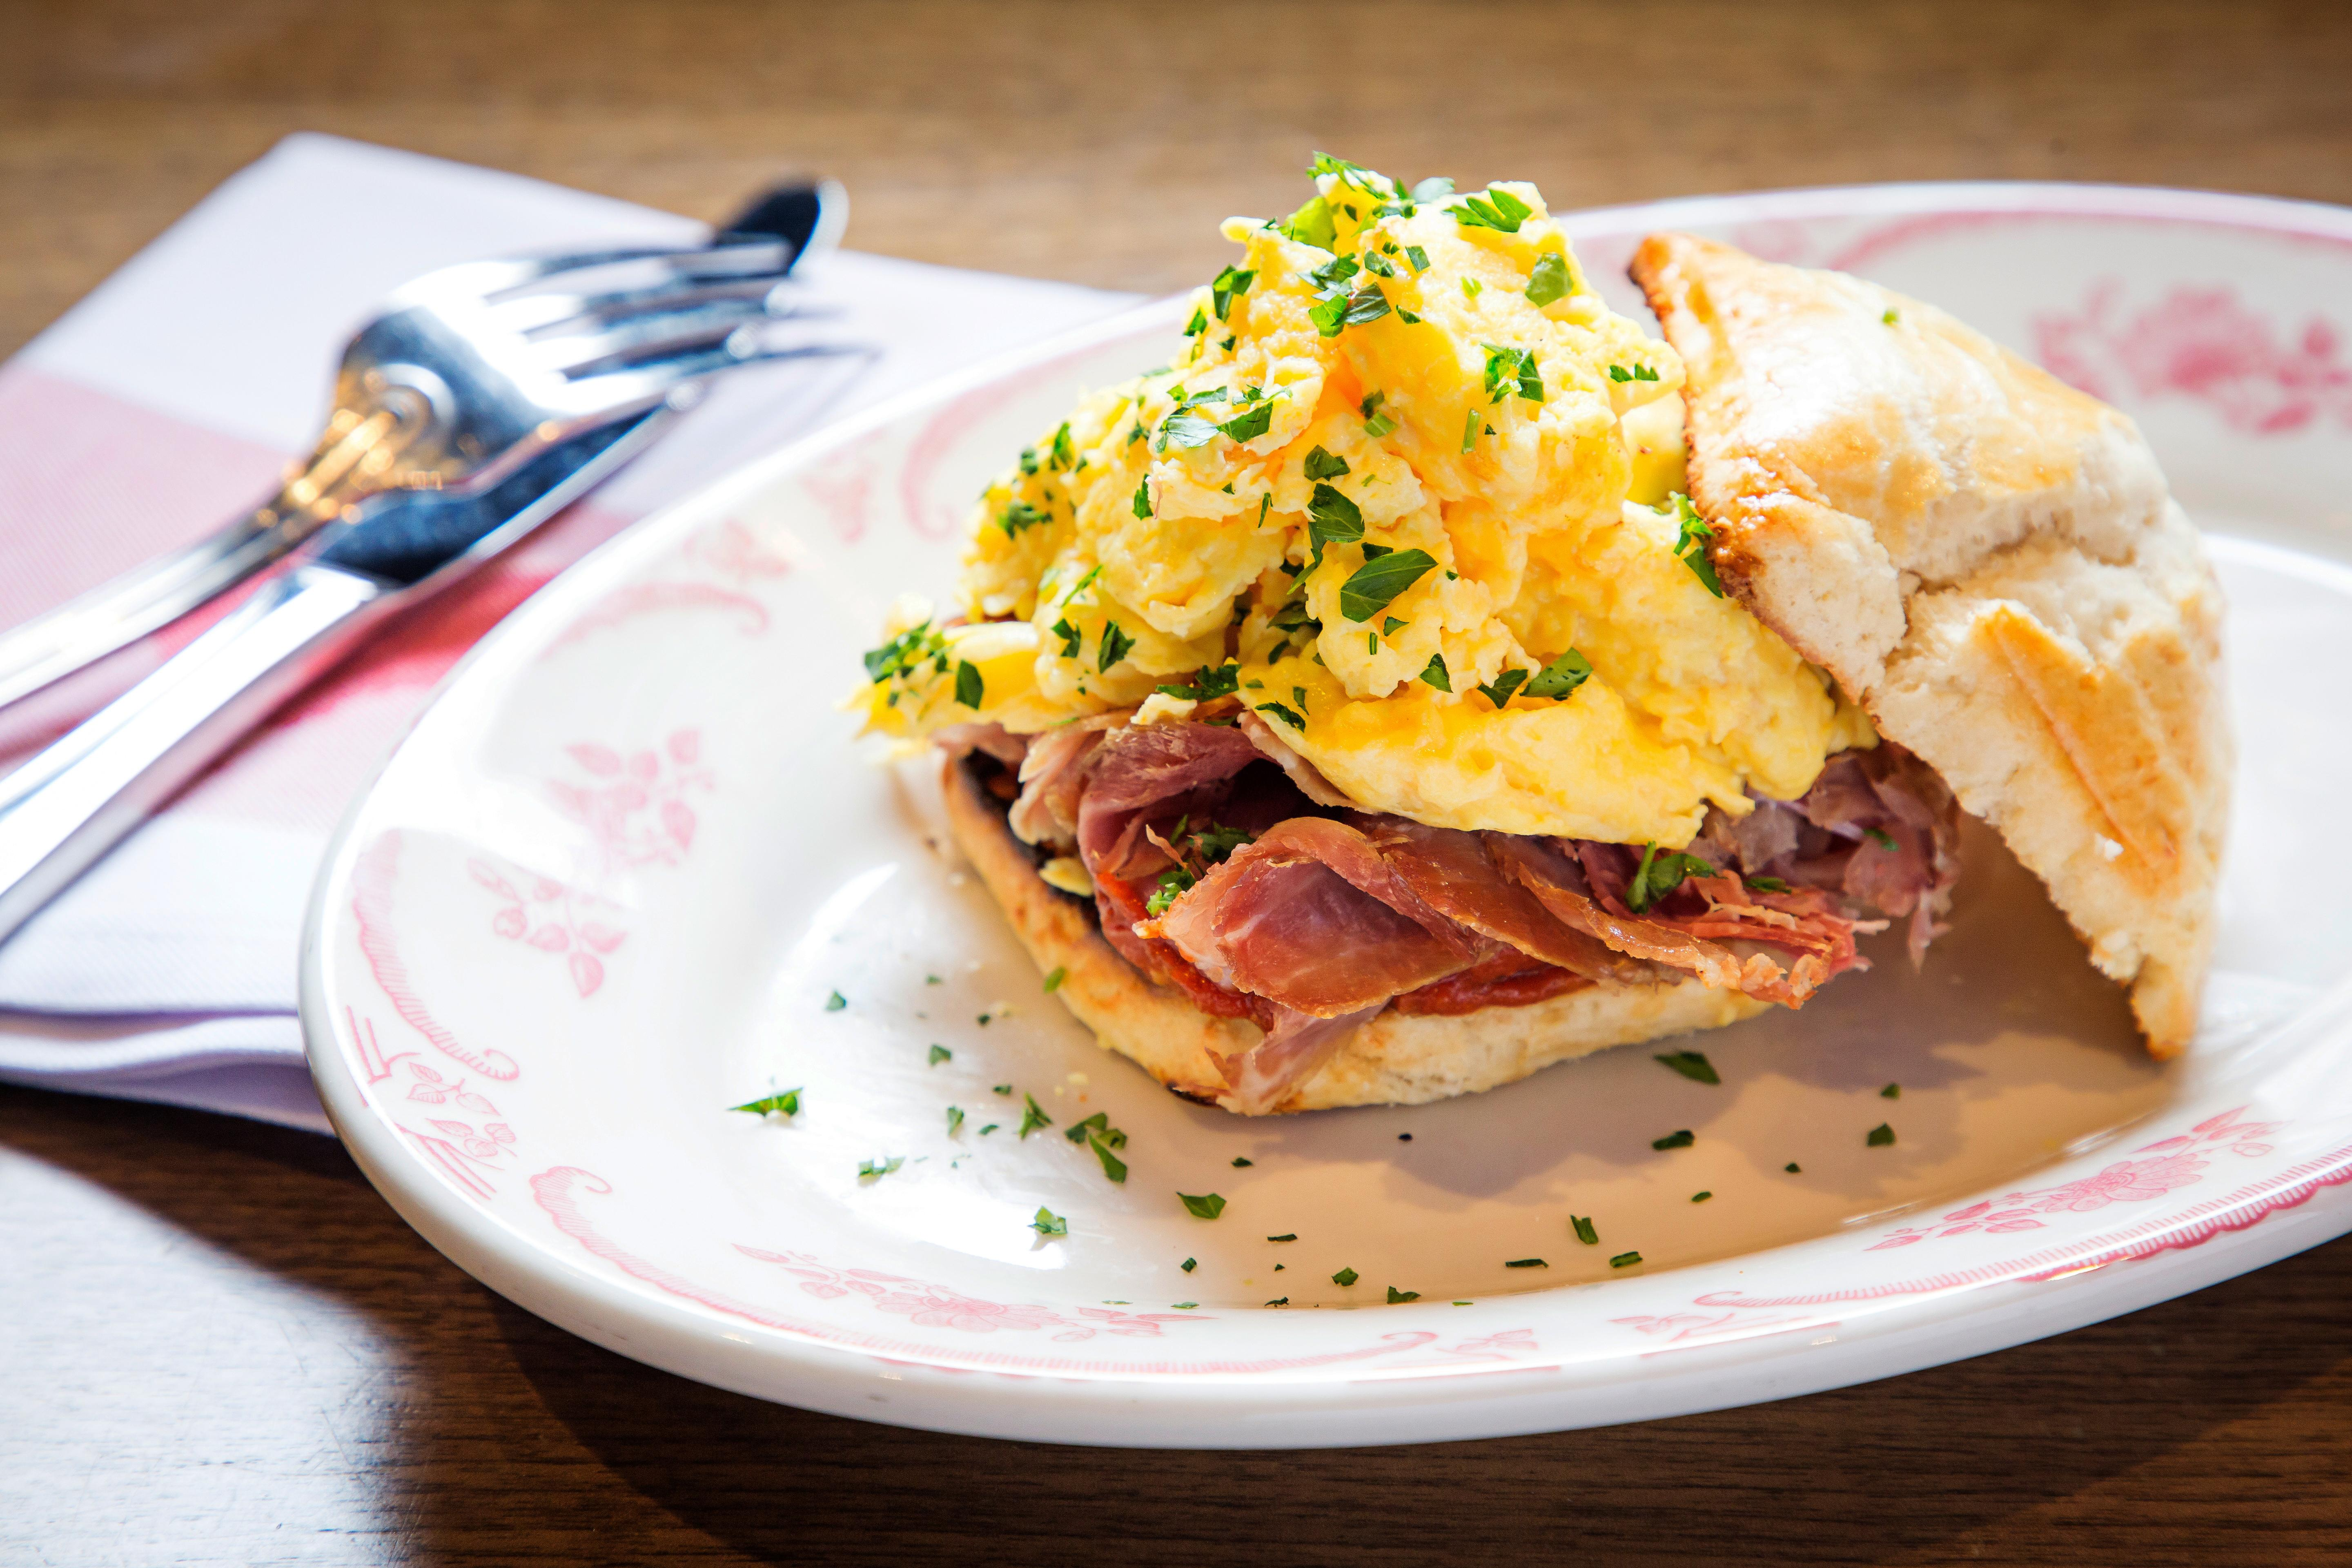 Thanks to Chef Marcus Samuelsson, you don't even have to get out of bed to enjoy a breakfast sandwich at the MGM National Harbor. The Beaten Biscuit Sandwich (cheesy scrambled egg, country ham, and tomato jam) is available through in-room dining and at the restaurant ($12). (Image: Courtesy Marcus)